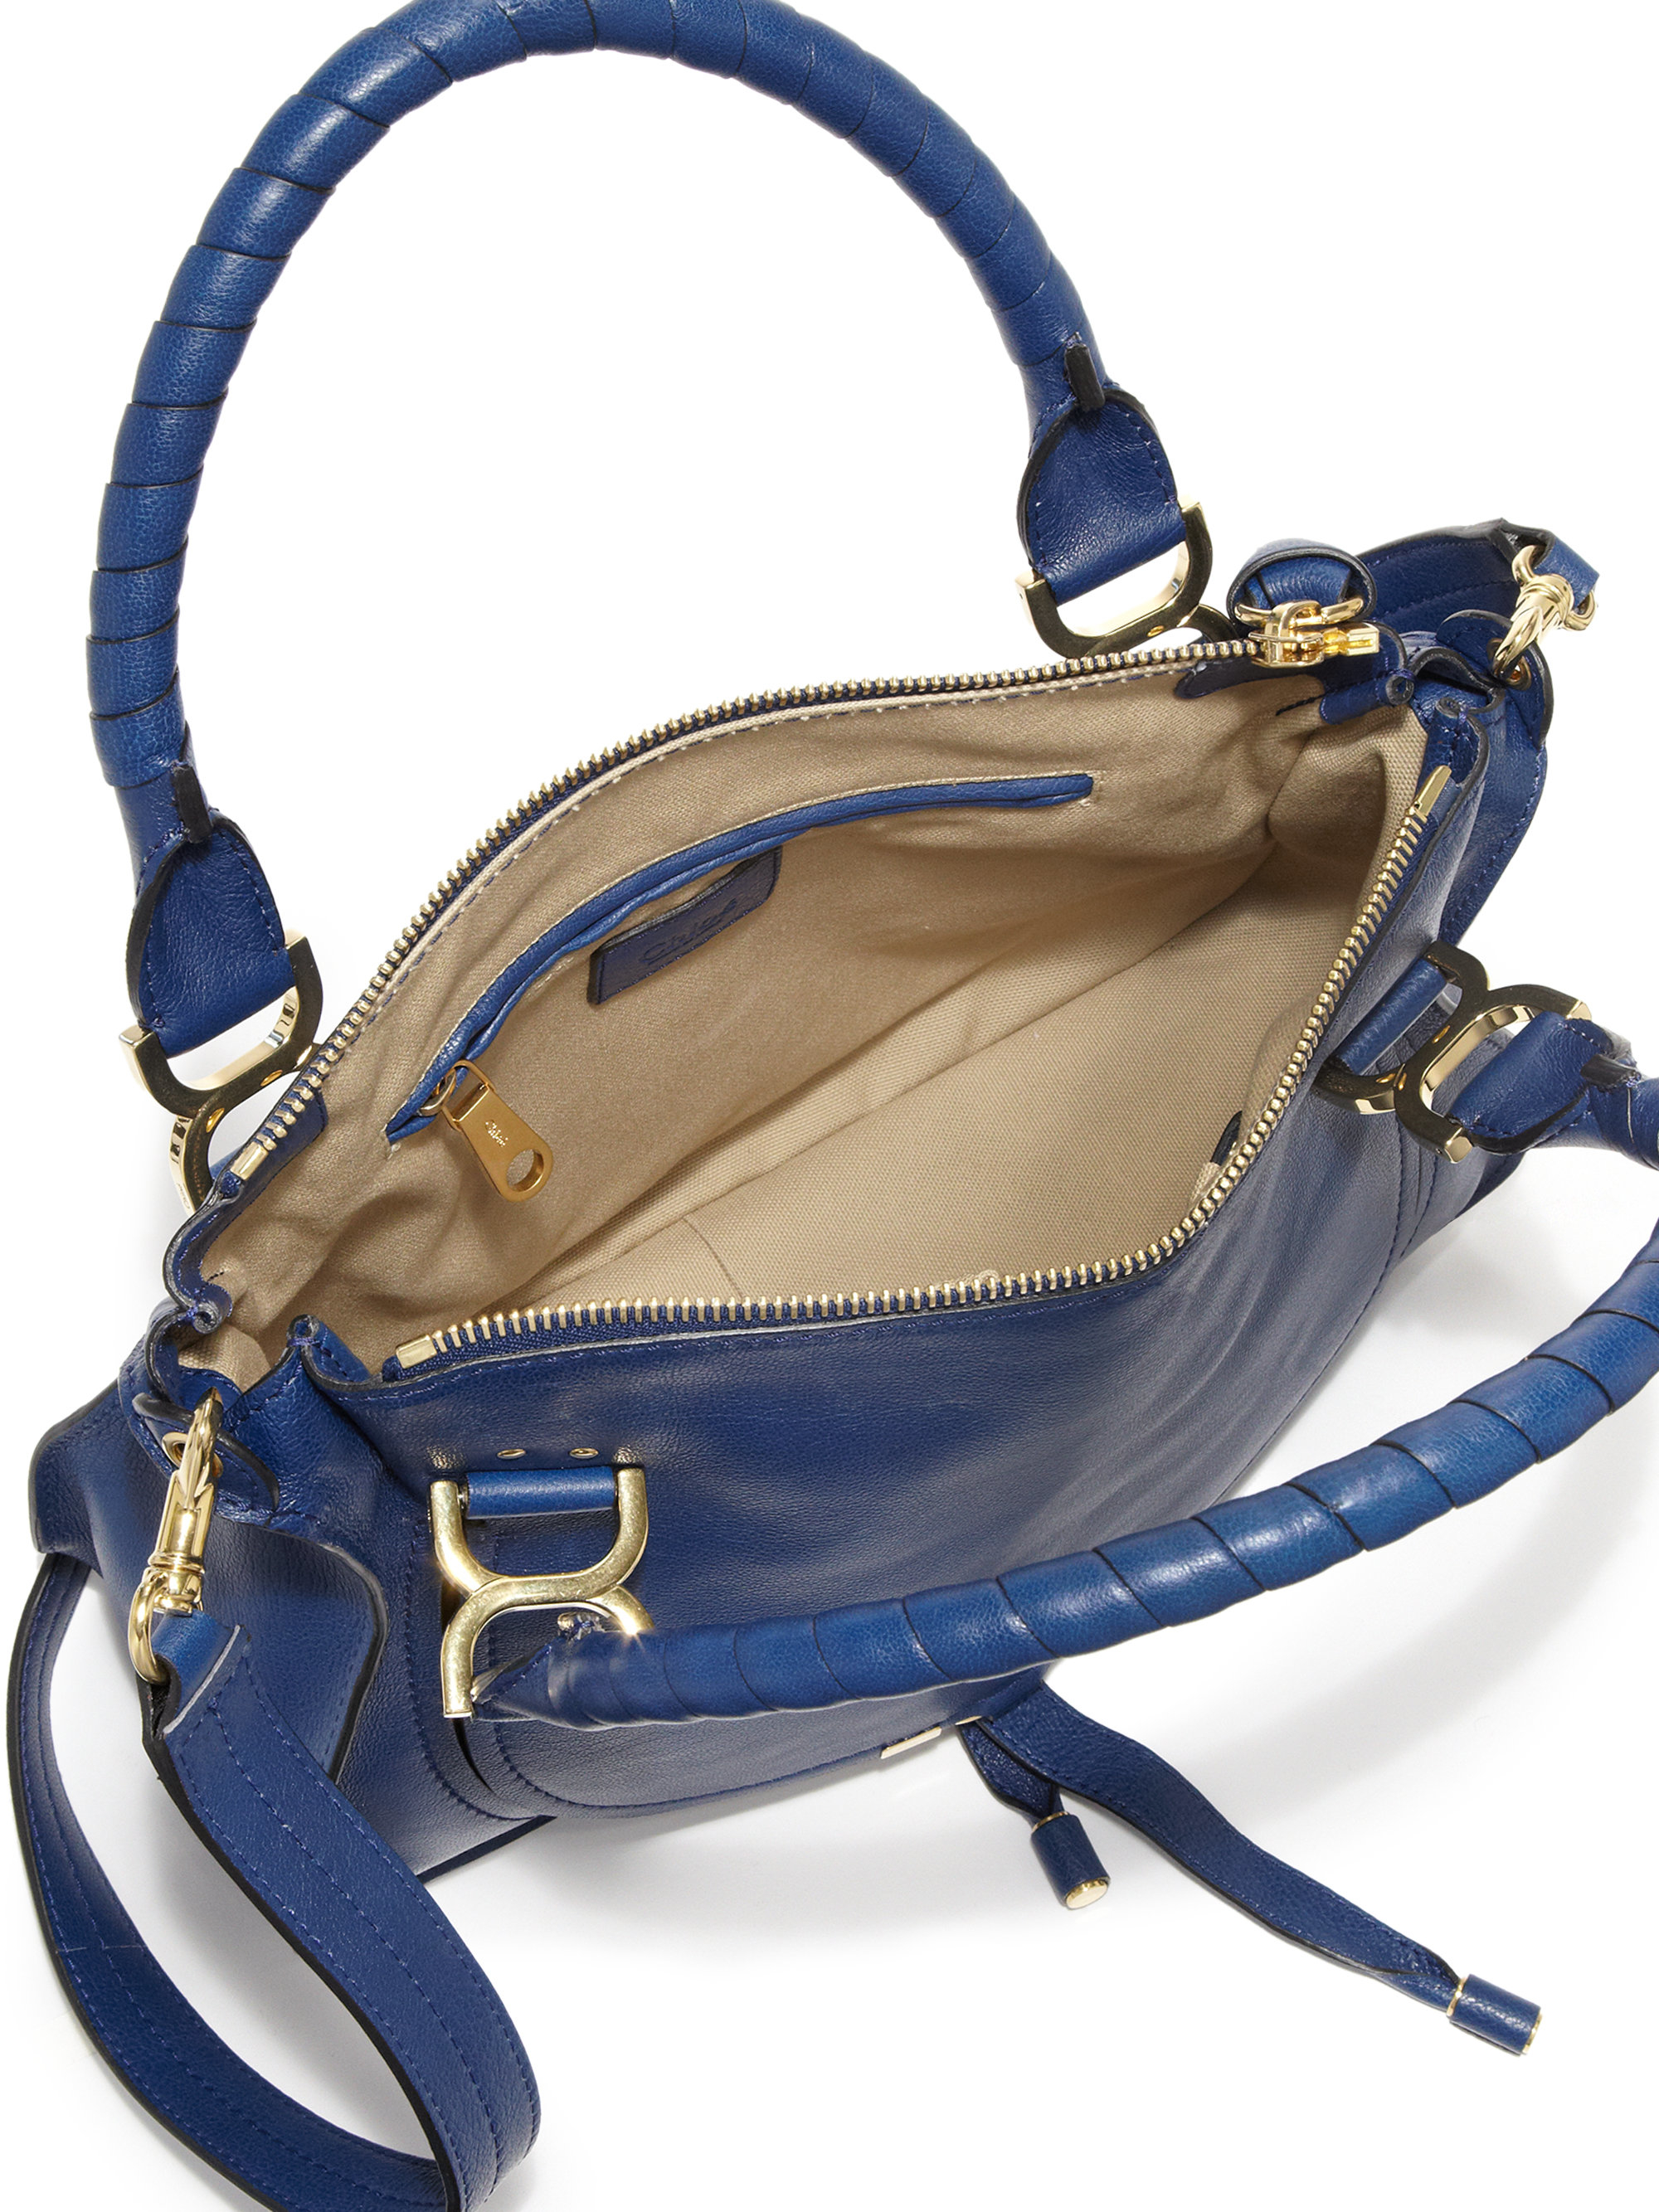 f7d984f2d1 Lyst - Chloé Marcie Medium Leather Satchel in Blue